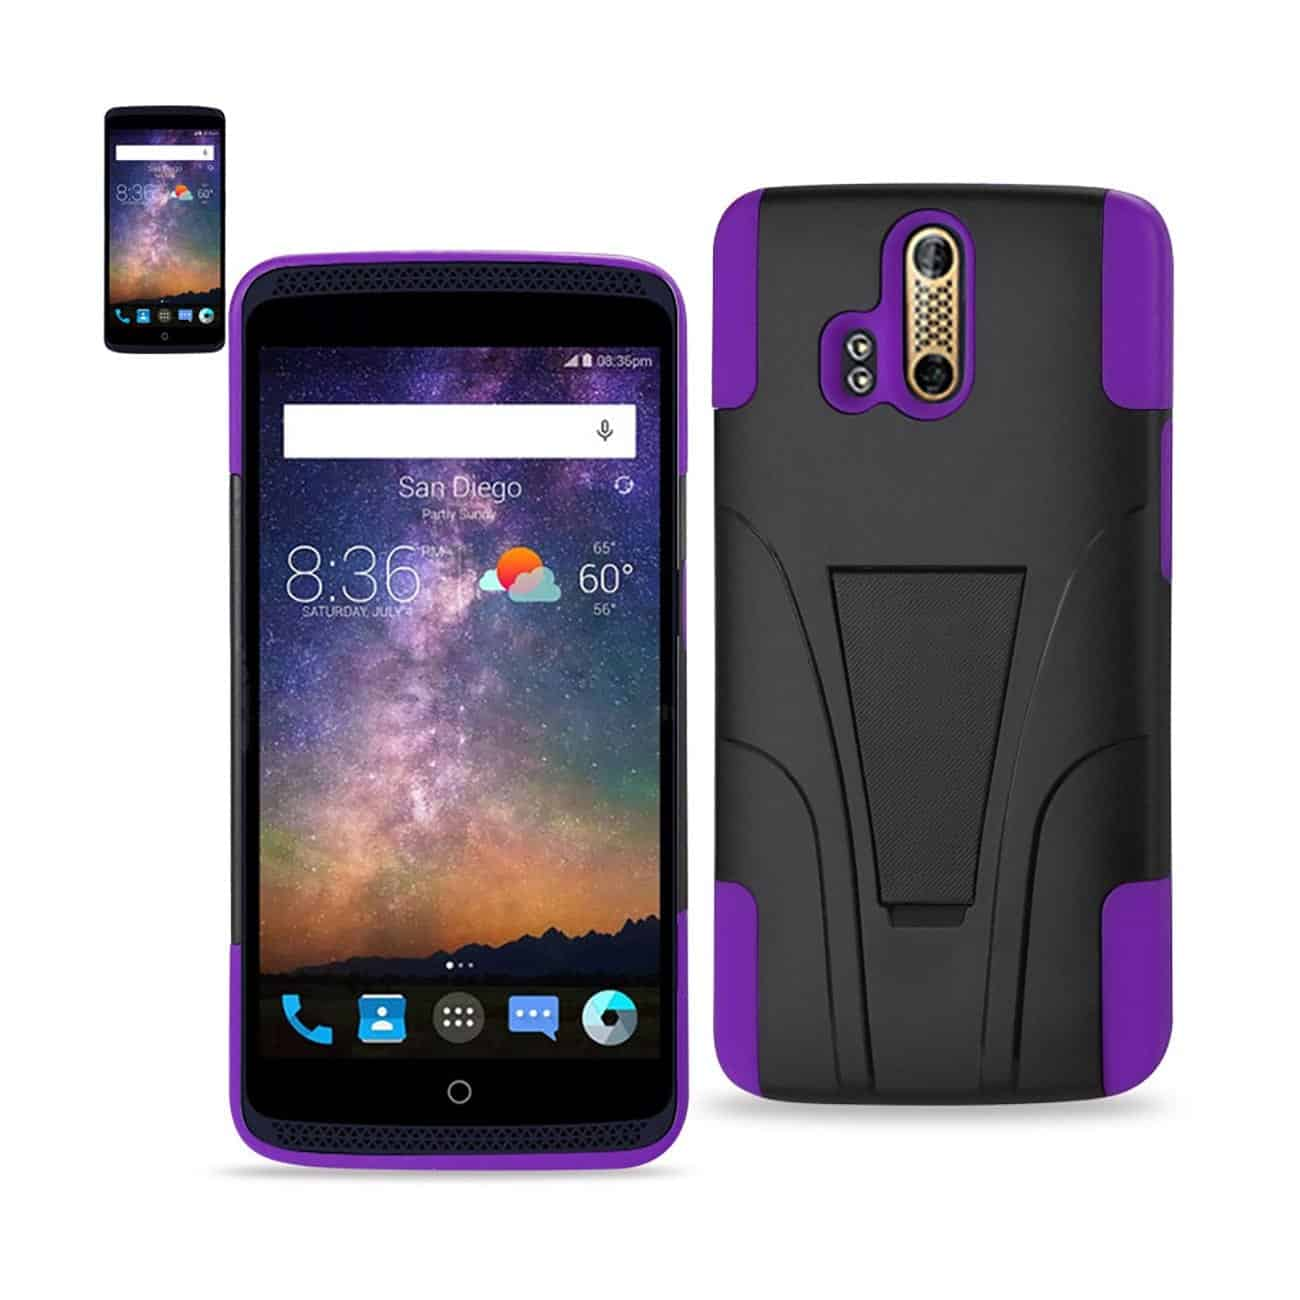 ZTE AXON PRO HYBRID HEAVY DUTY CASE WITH KICKSTAND IN PURPLE BLACK